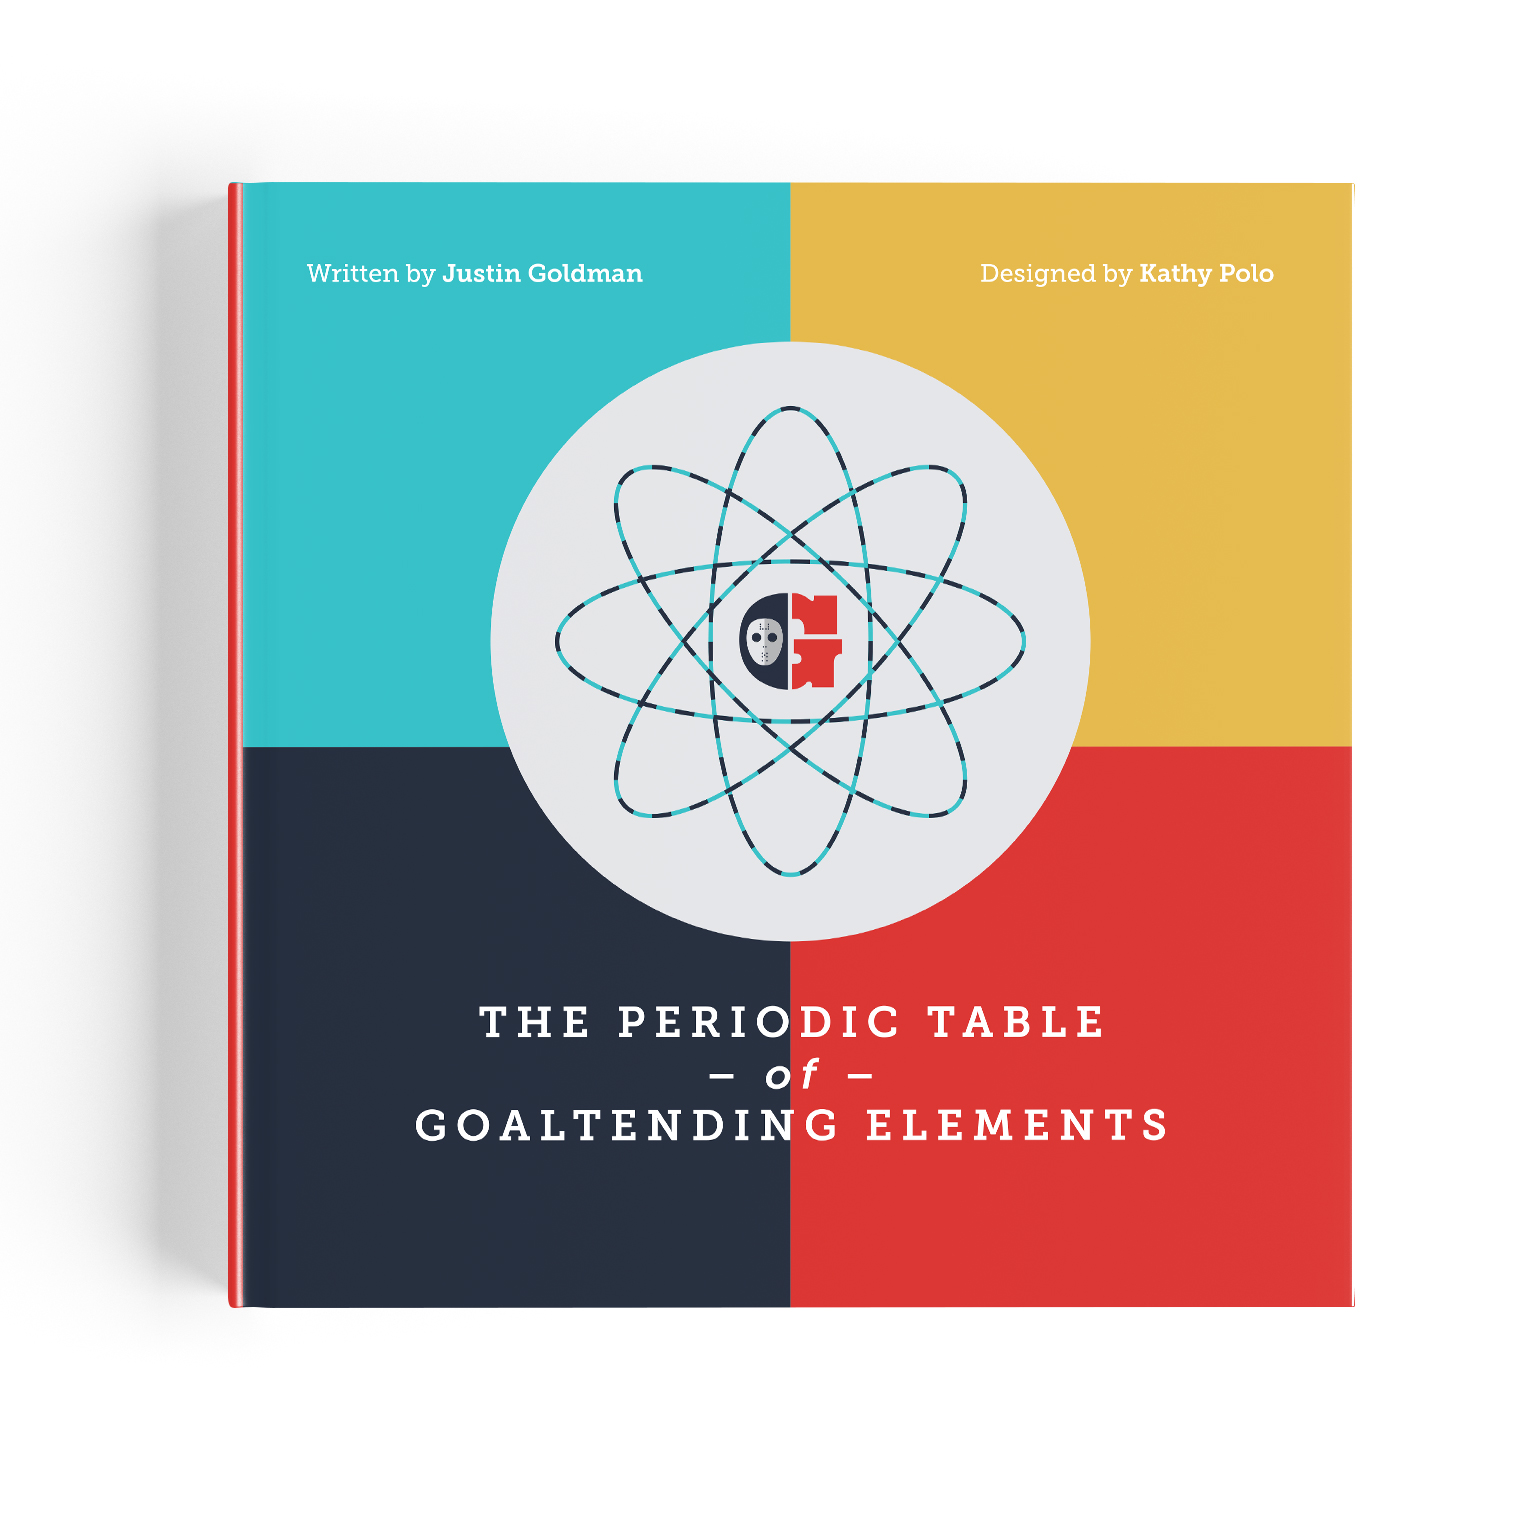 The Periodic Table of Goaltending Elements